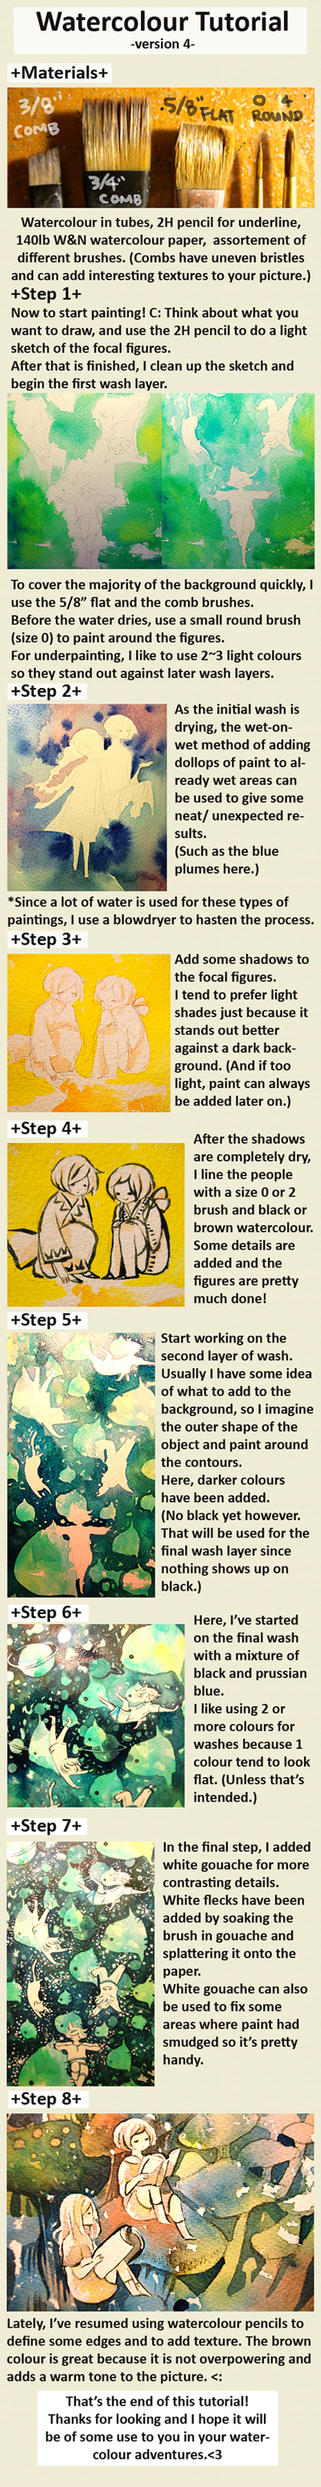 watercolour tutorial v.4 by koyamori